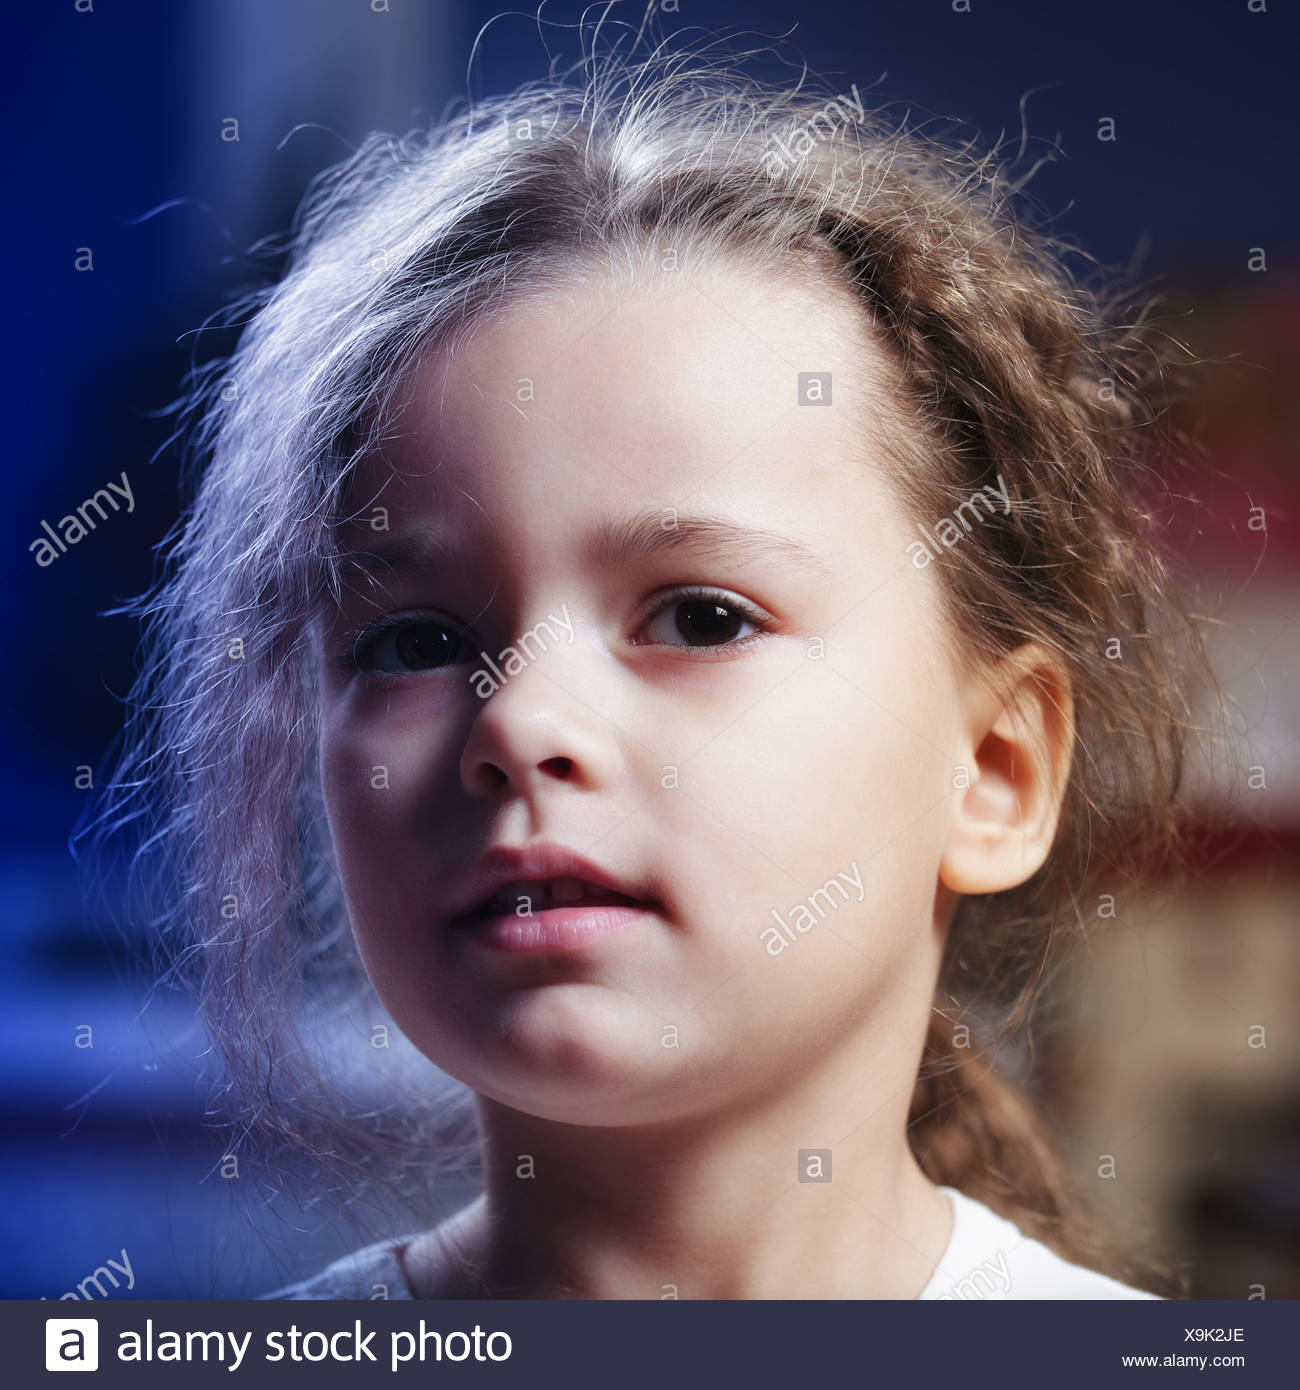 Little girl in darkness - Stock Image